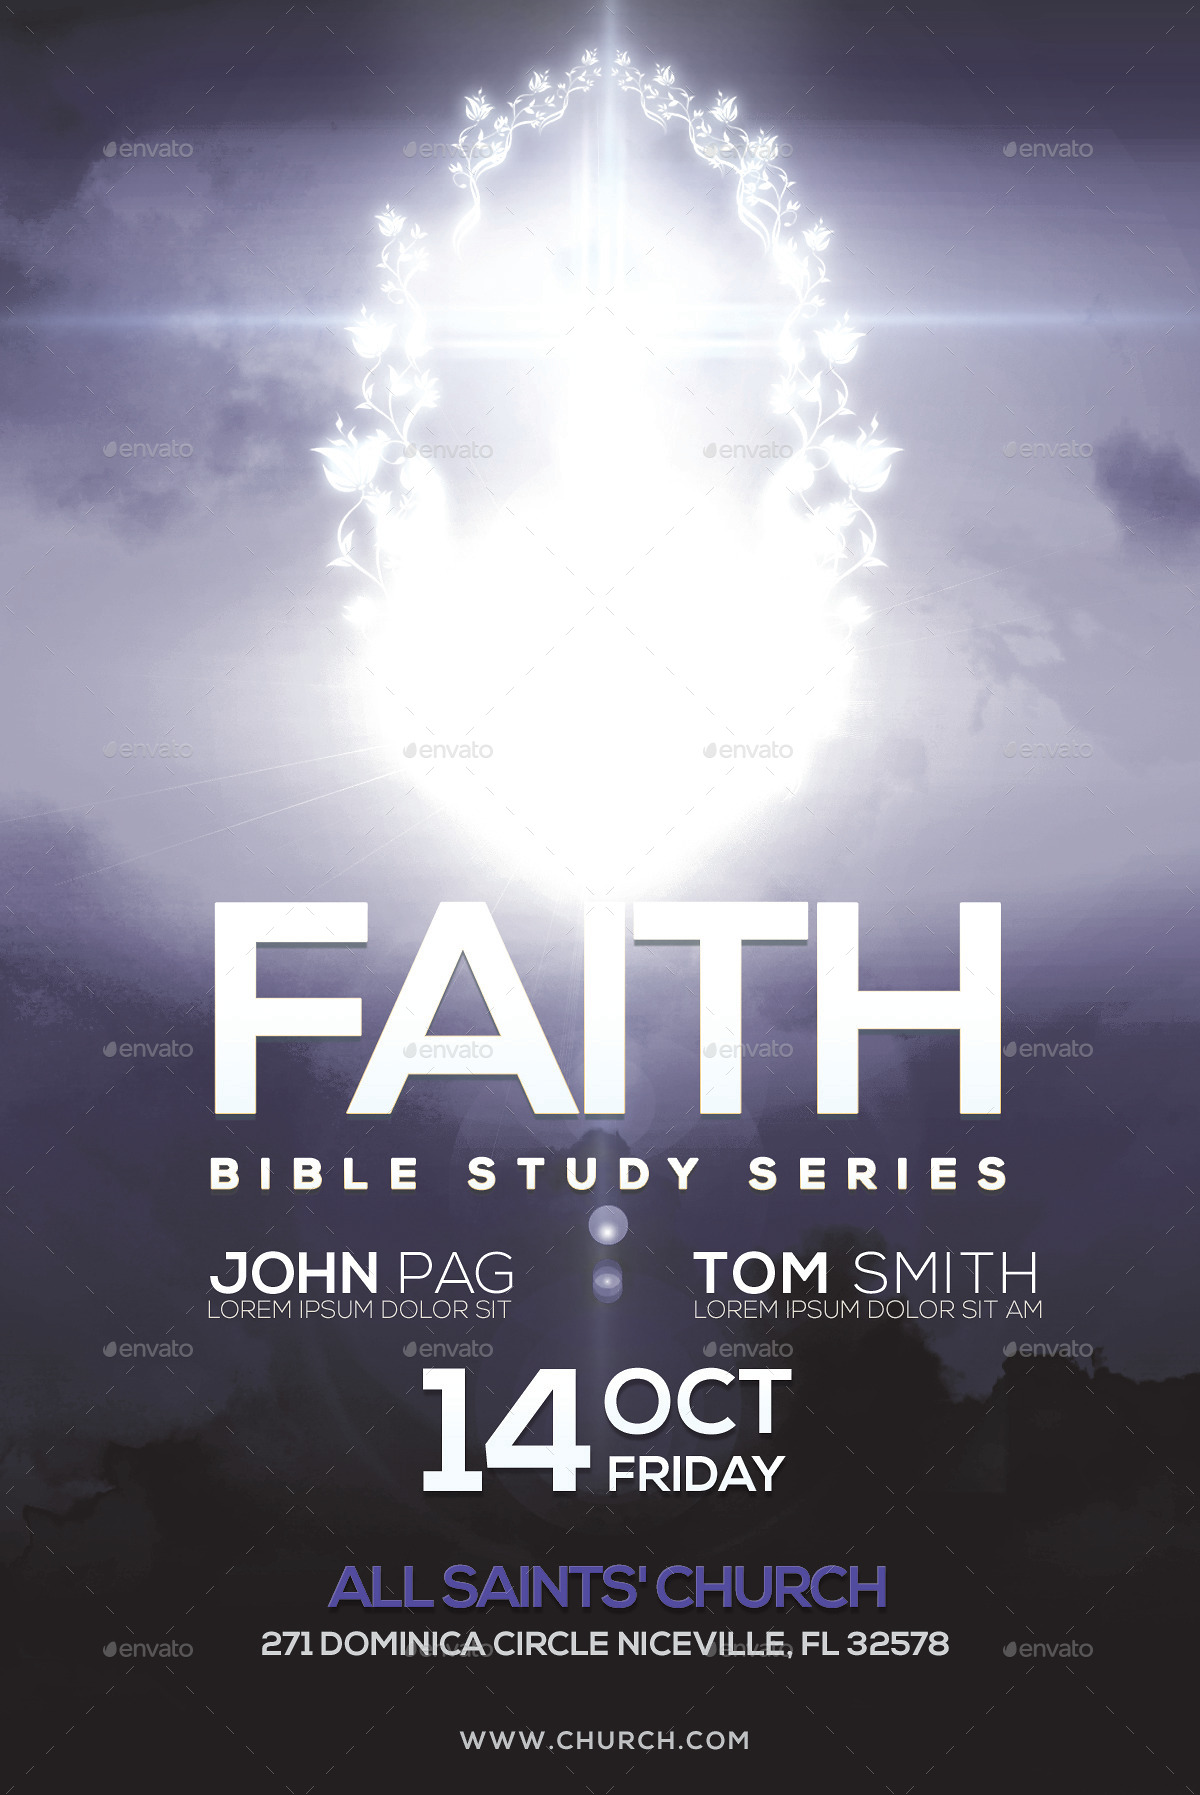 faith bible study series by romich